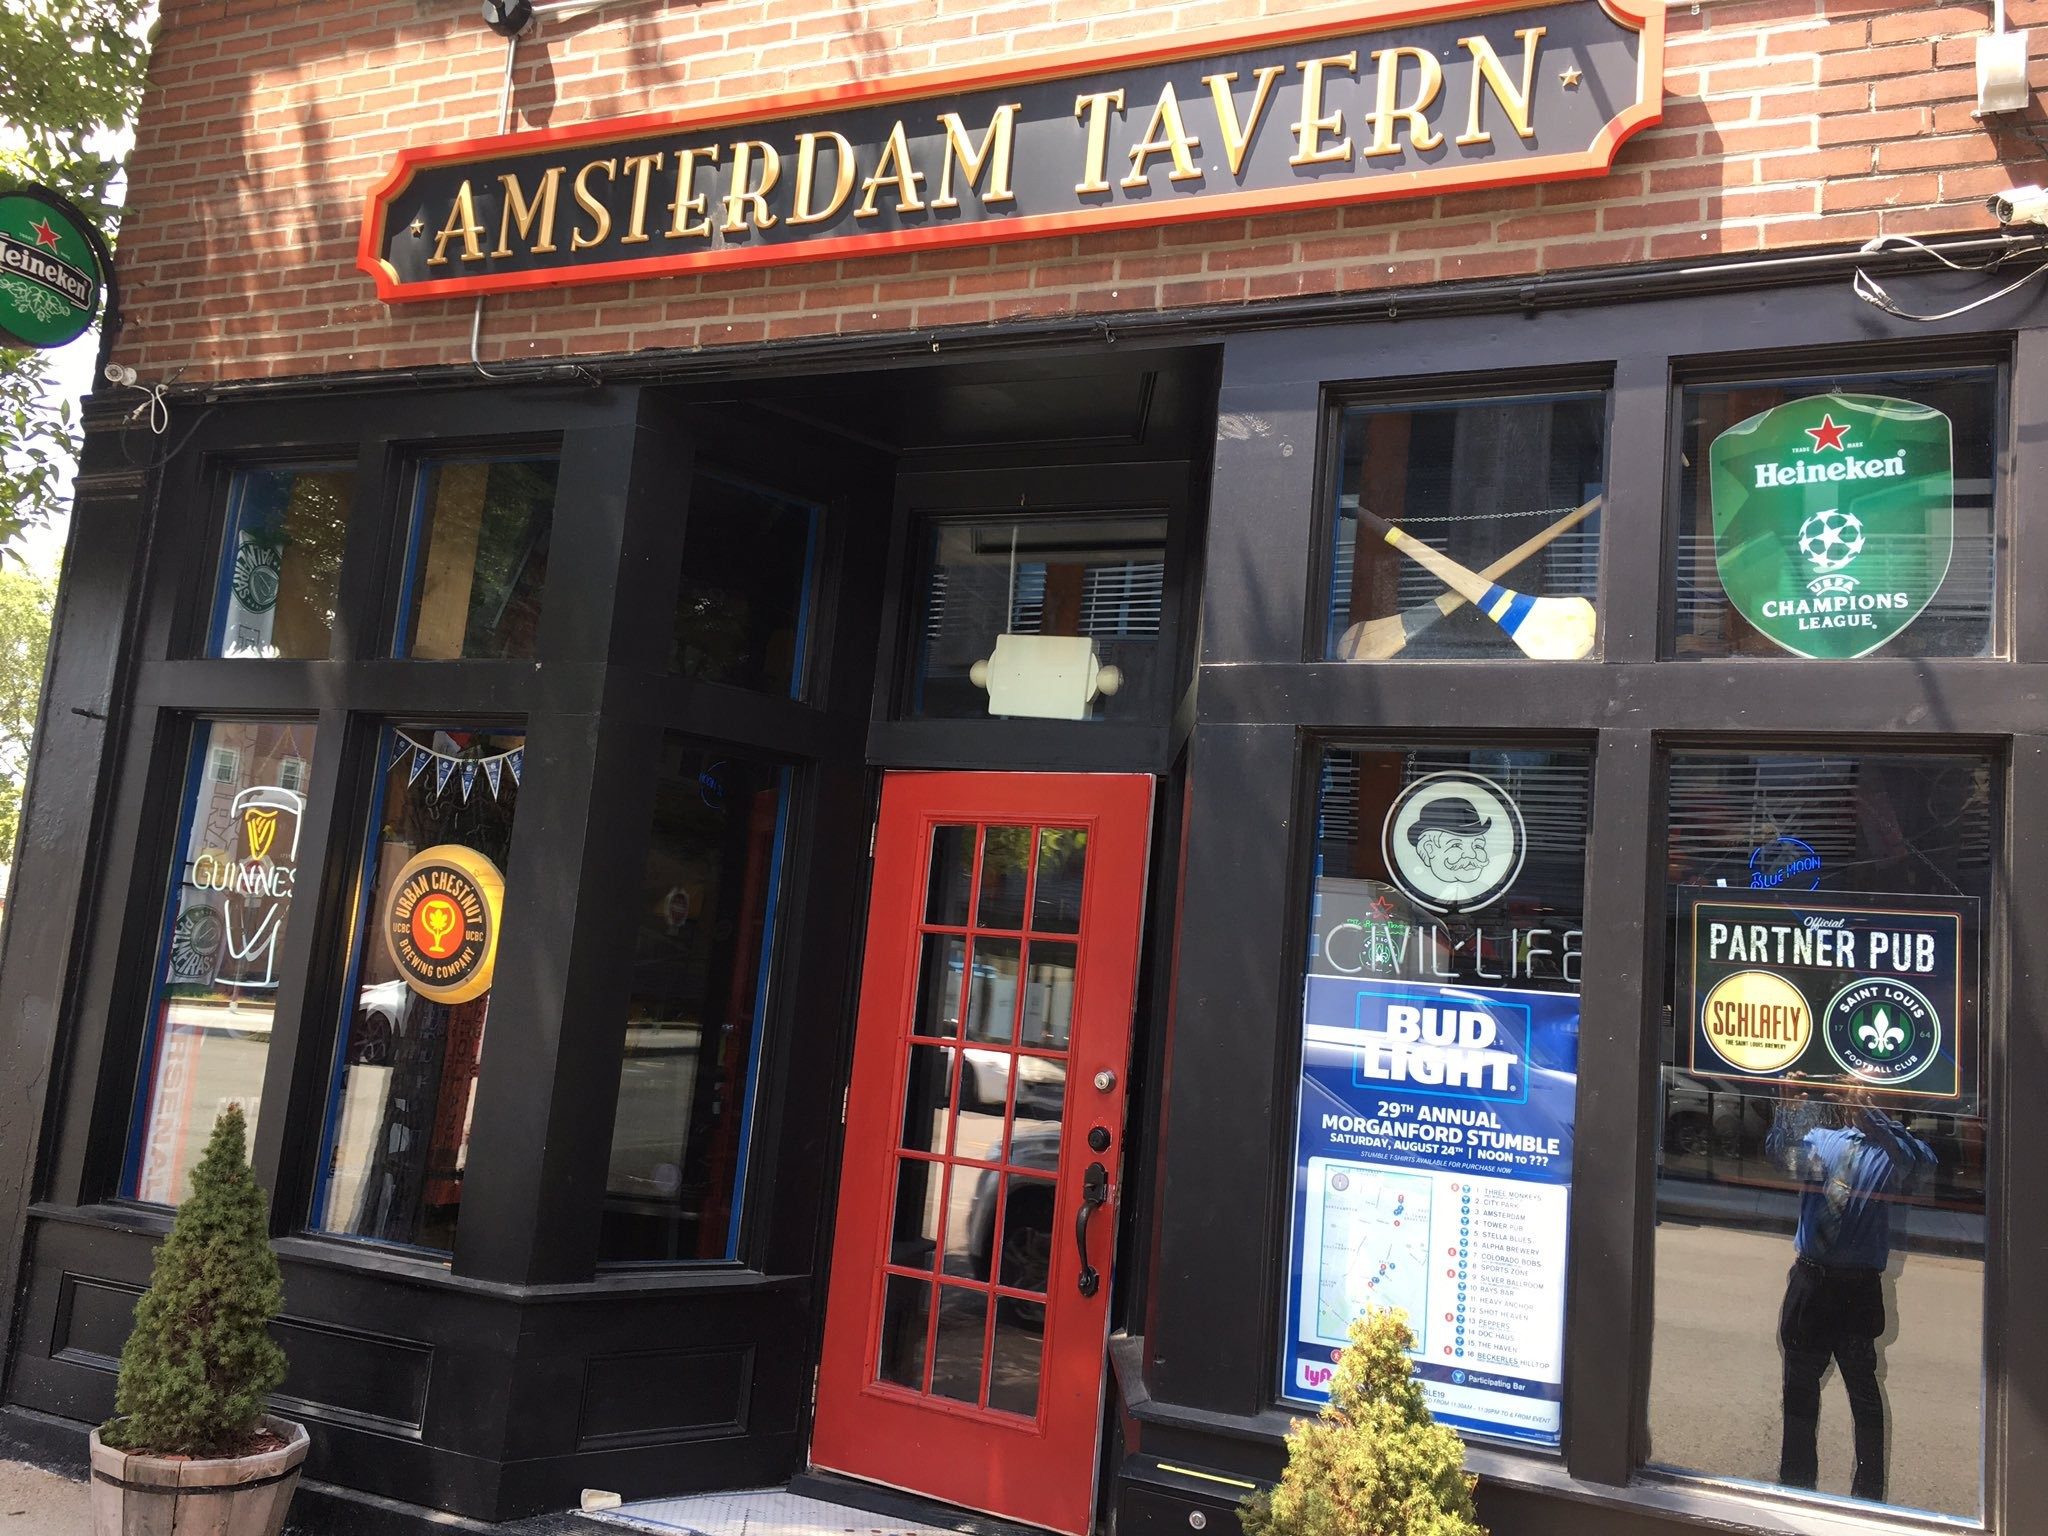 Amsterdam Tavern is excited for Major League Soccer in St. Louis